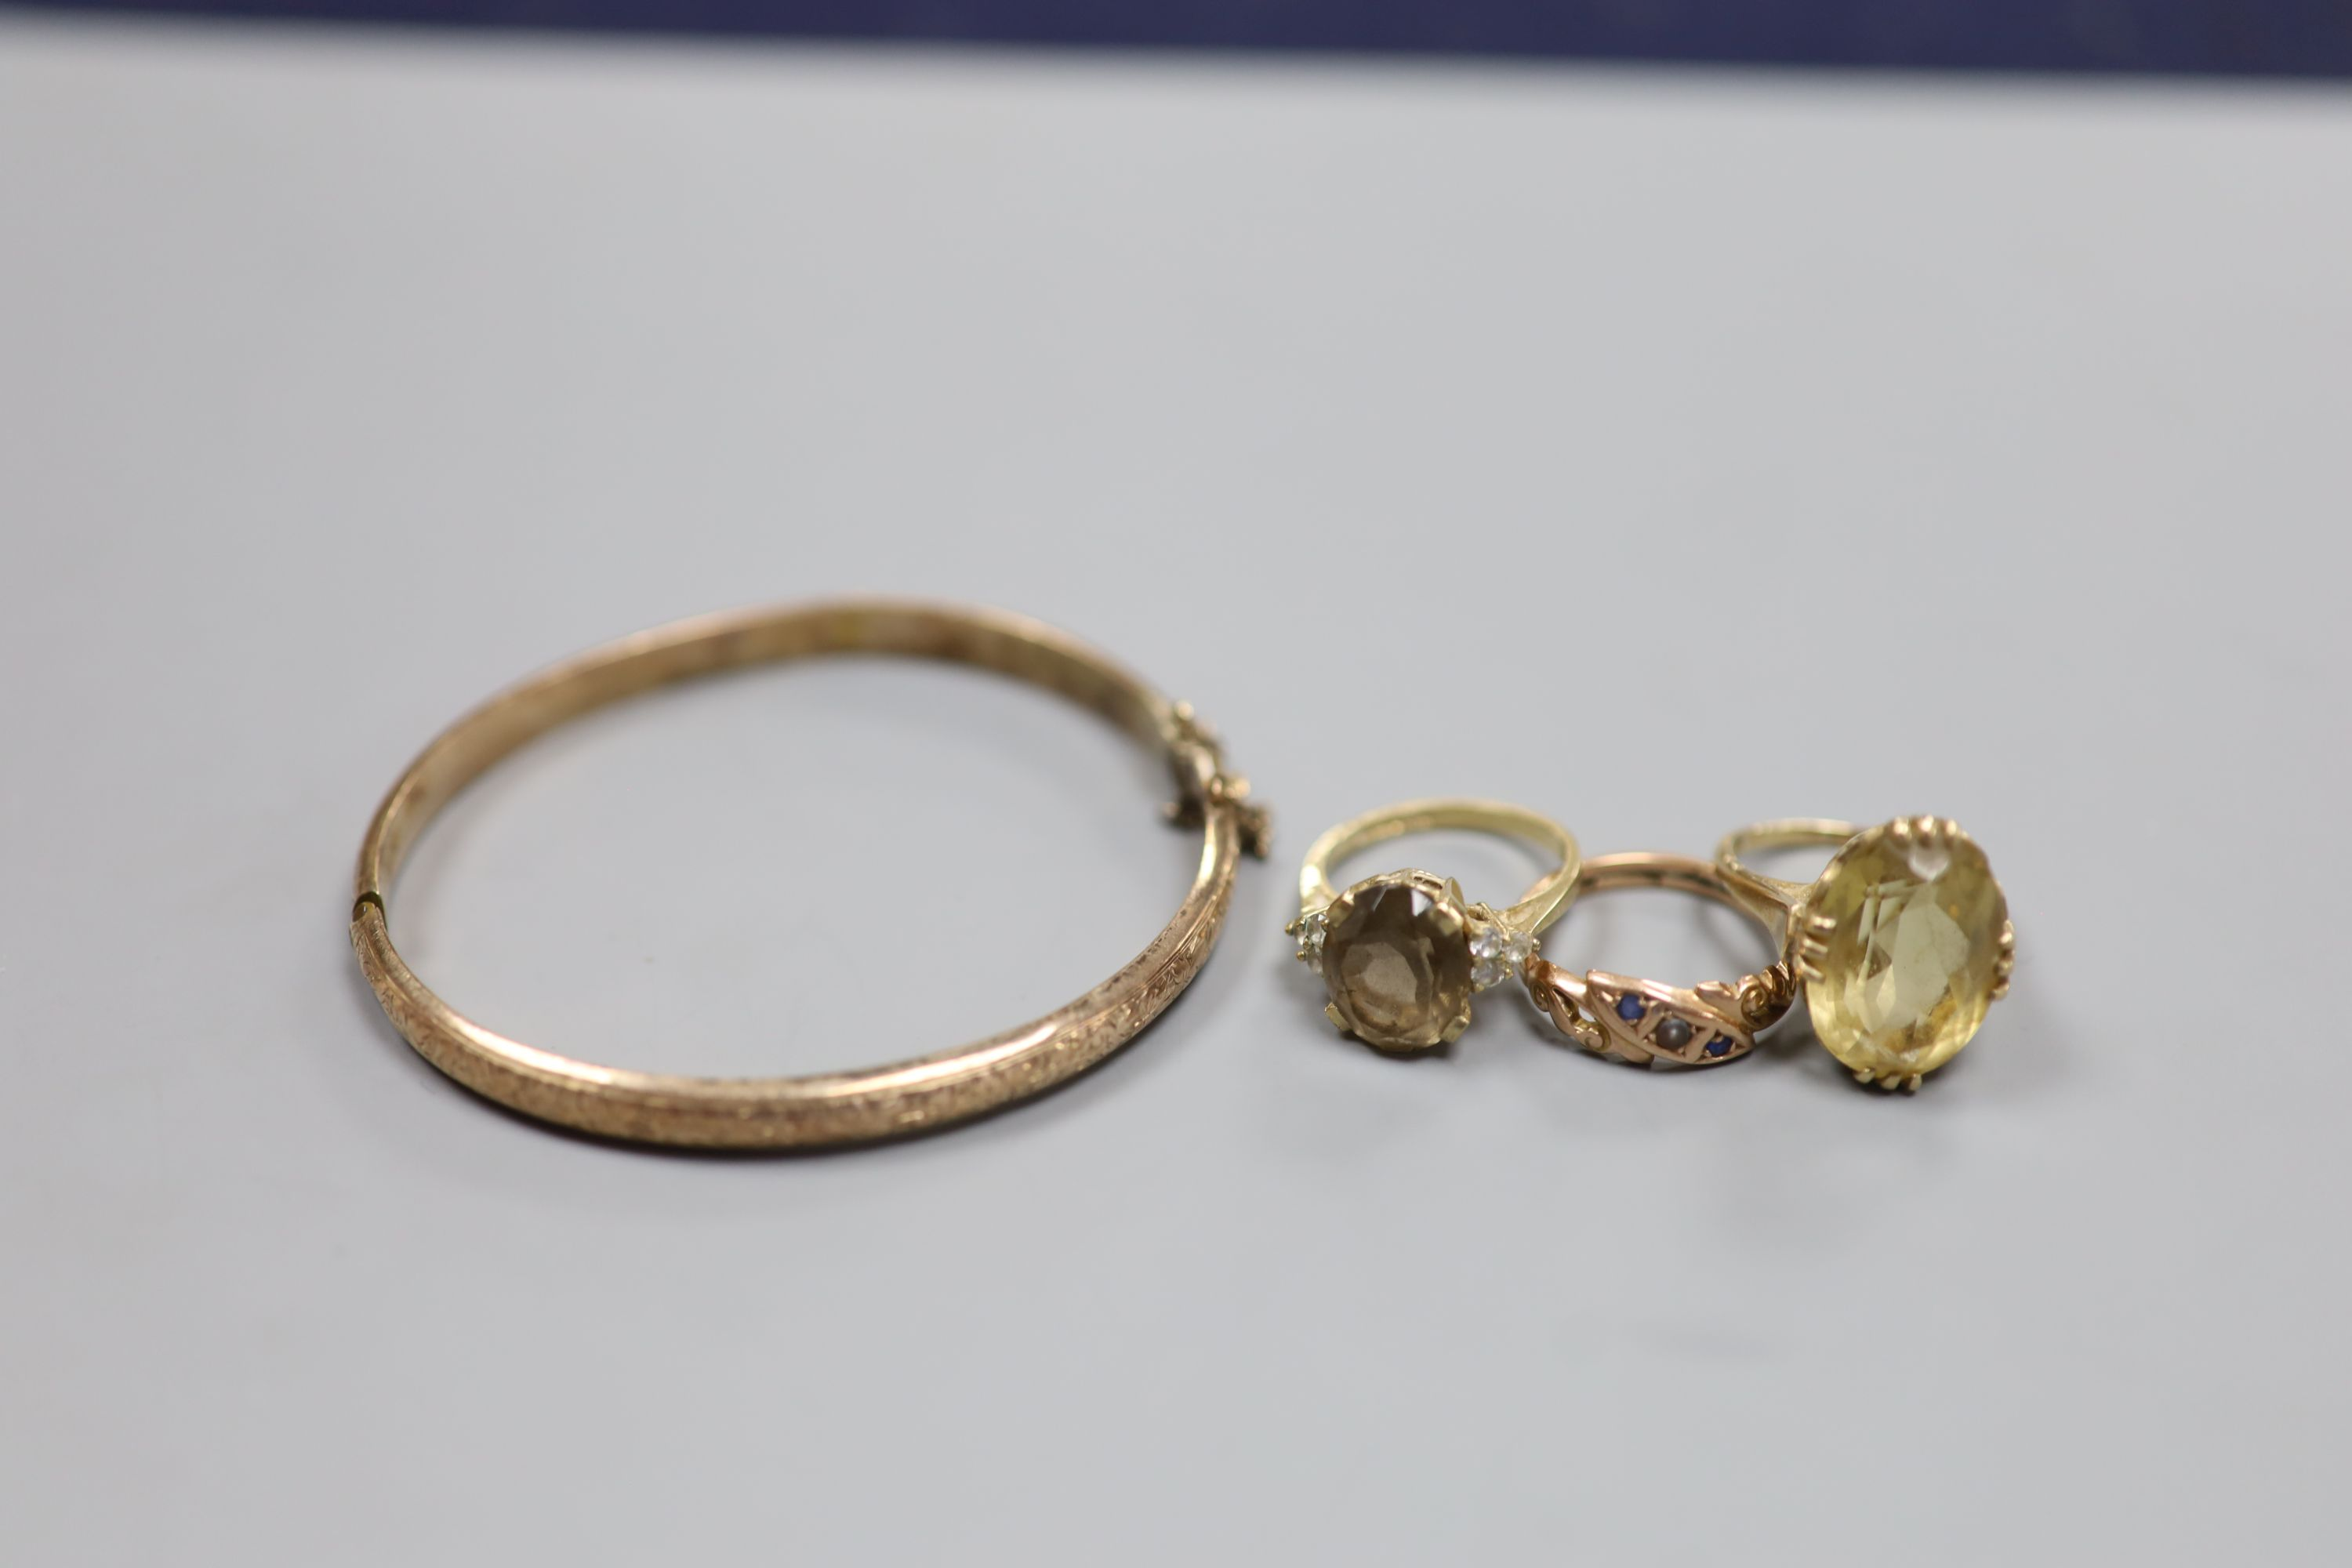 Three assorted 9ct and gem set rings and a 9ct gold hinged bangle,gross 18.1 grams. - Image 2 of 3